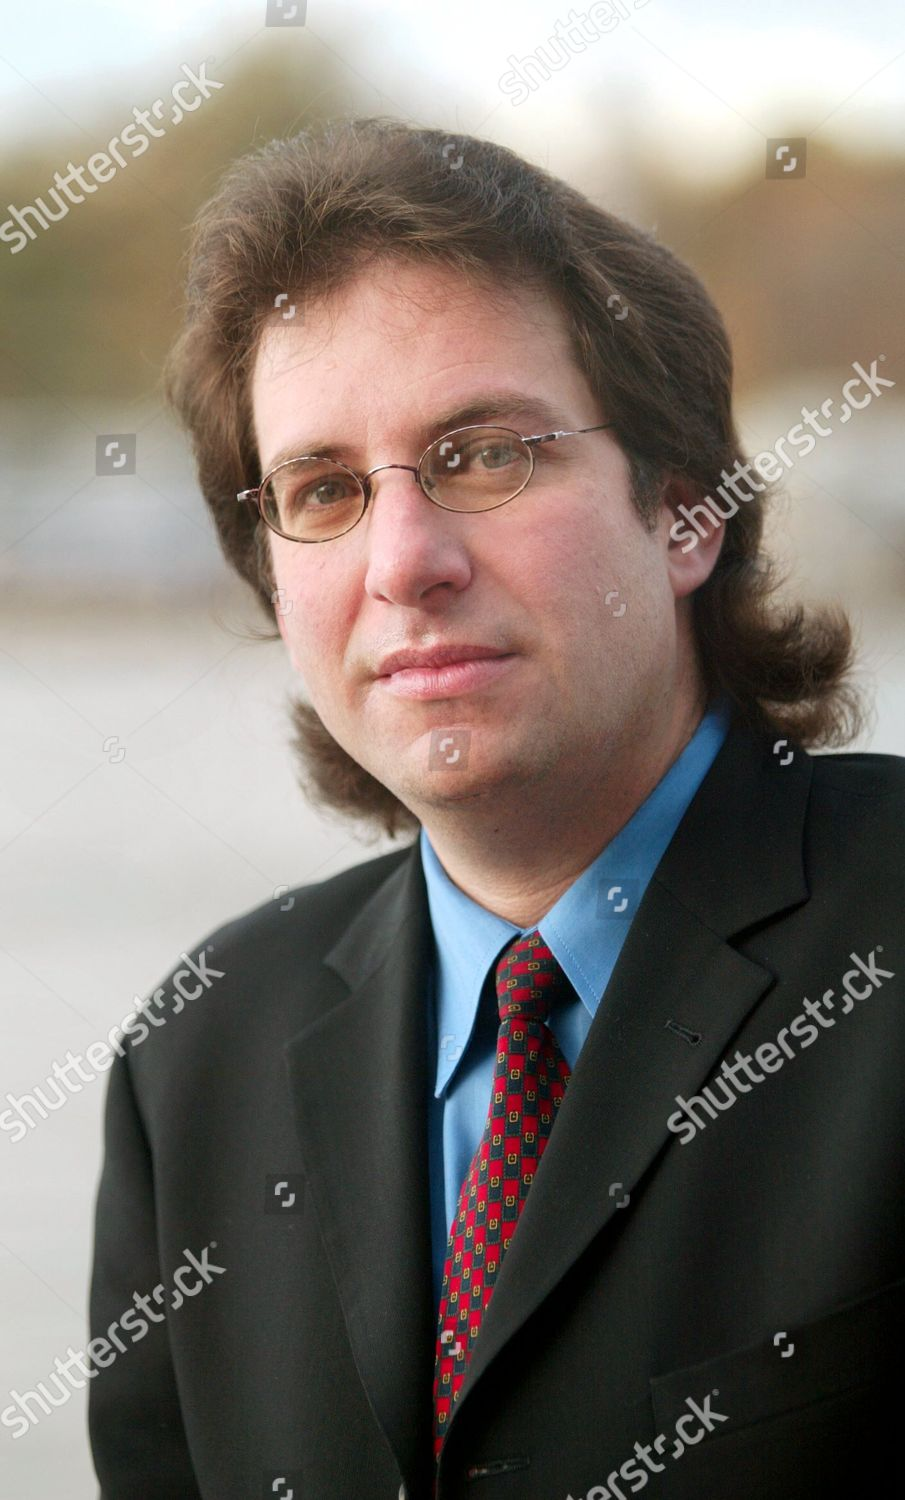 KEVIN MITNICK Editorial Stock Photo - Stock Image   Shutterstock